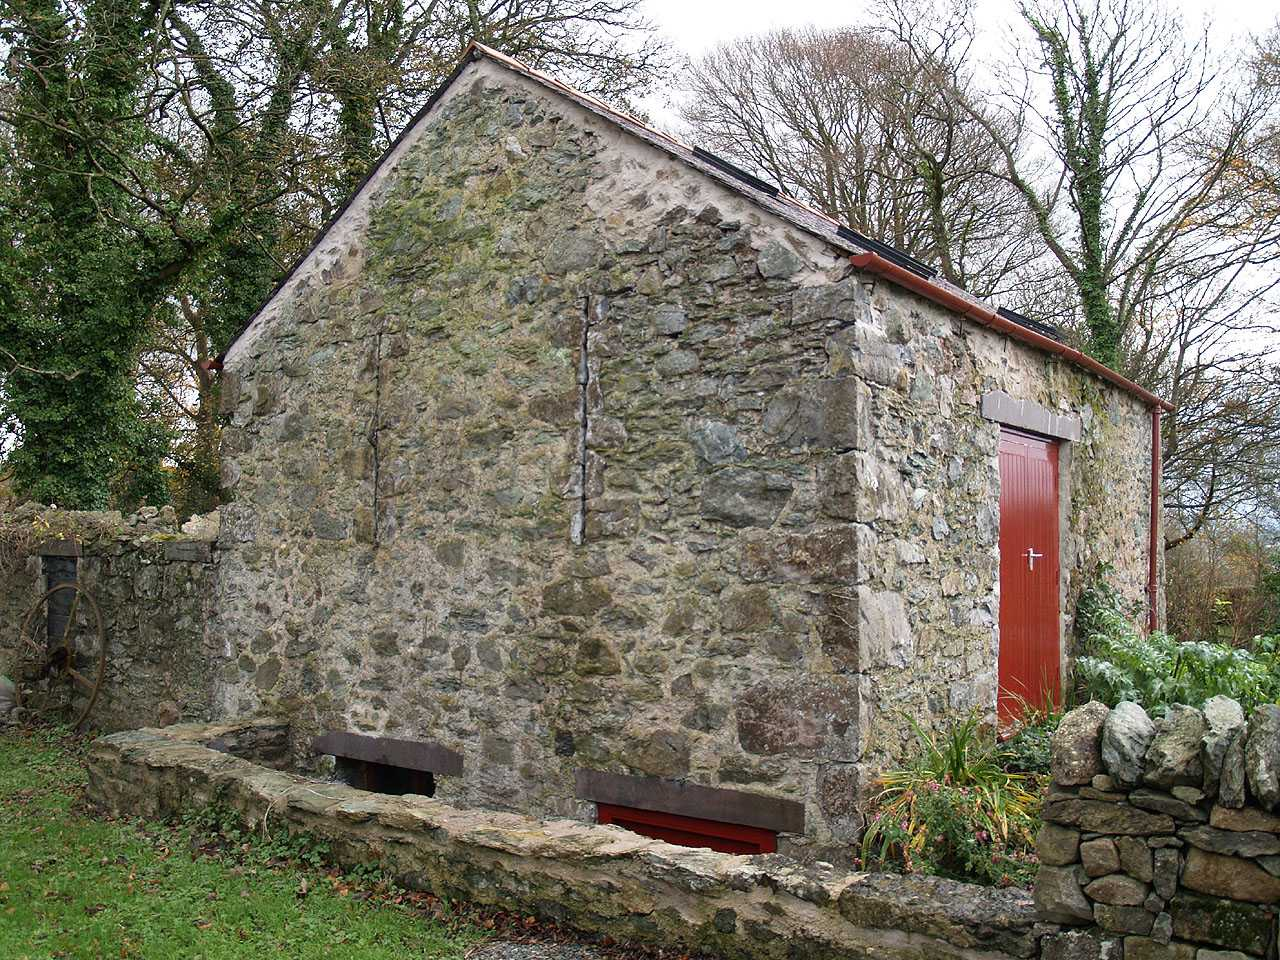 Anglesey, Llangefni Water Mill showing cellar below